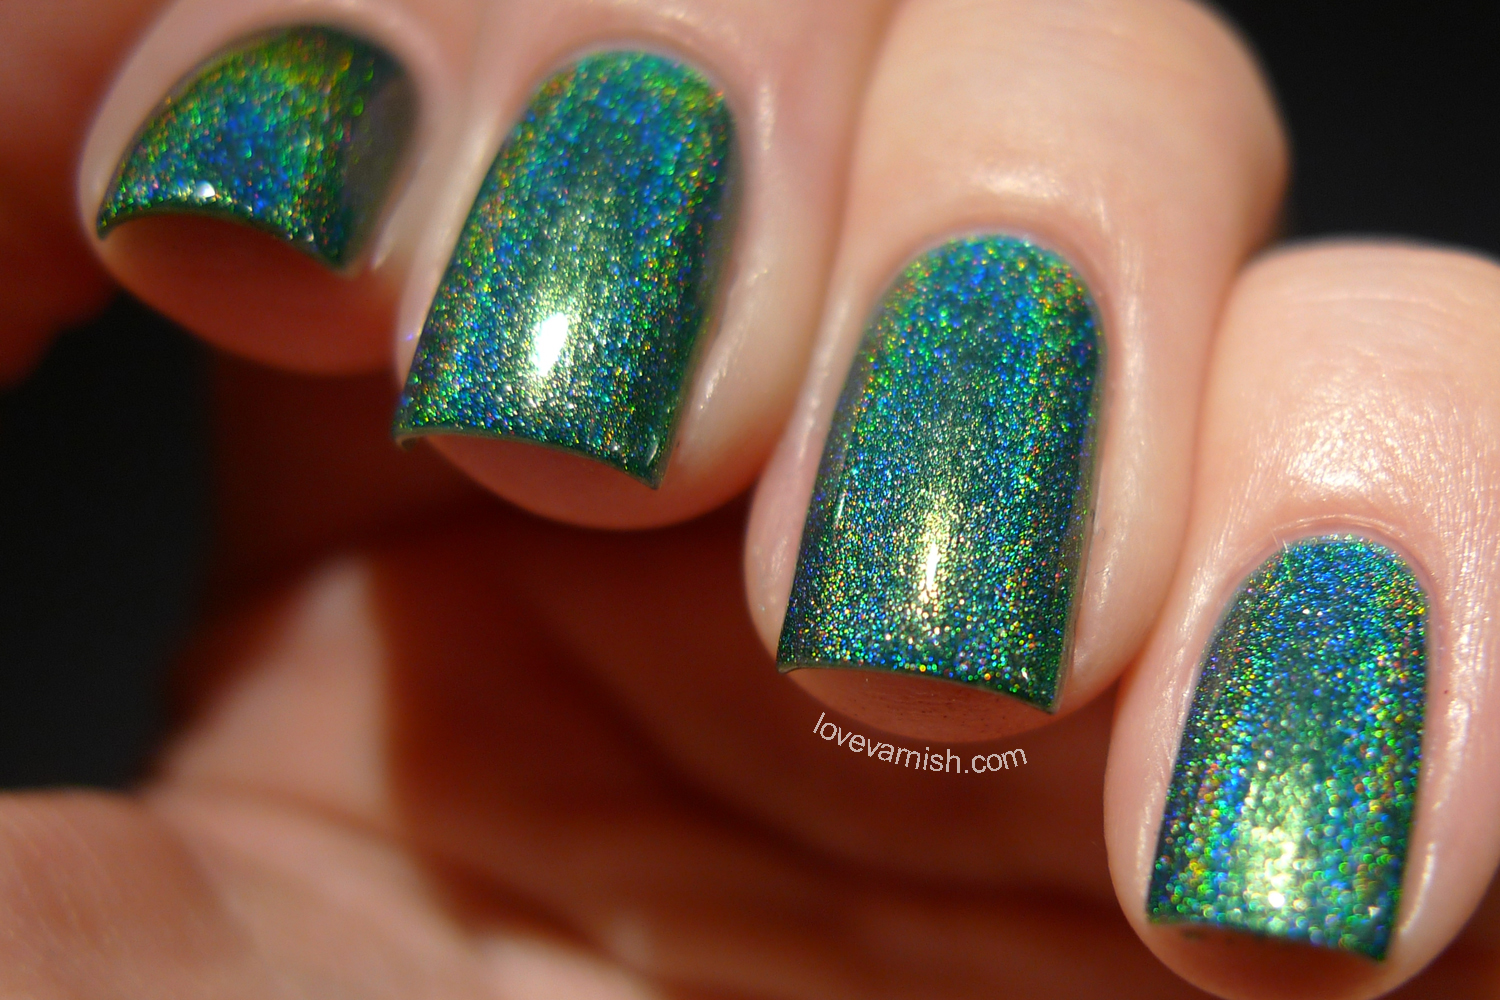 Too Fancy Lacquer Peacock Parade peacock green linear holographic polish